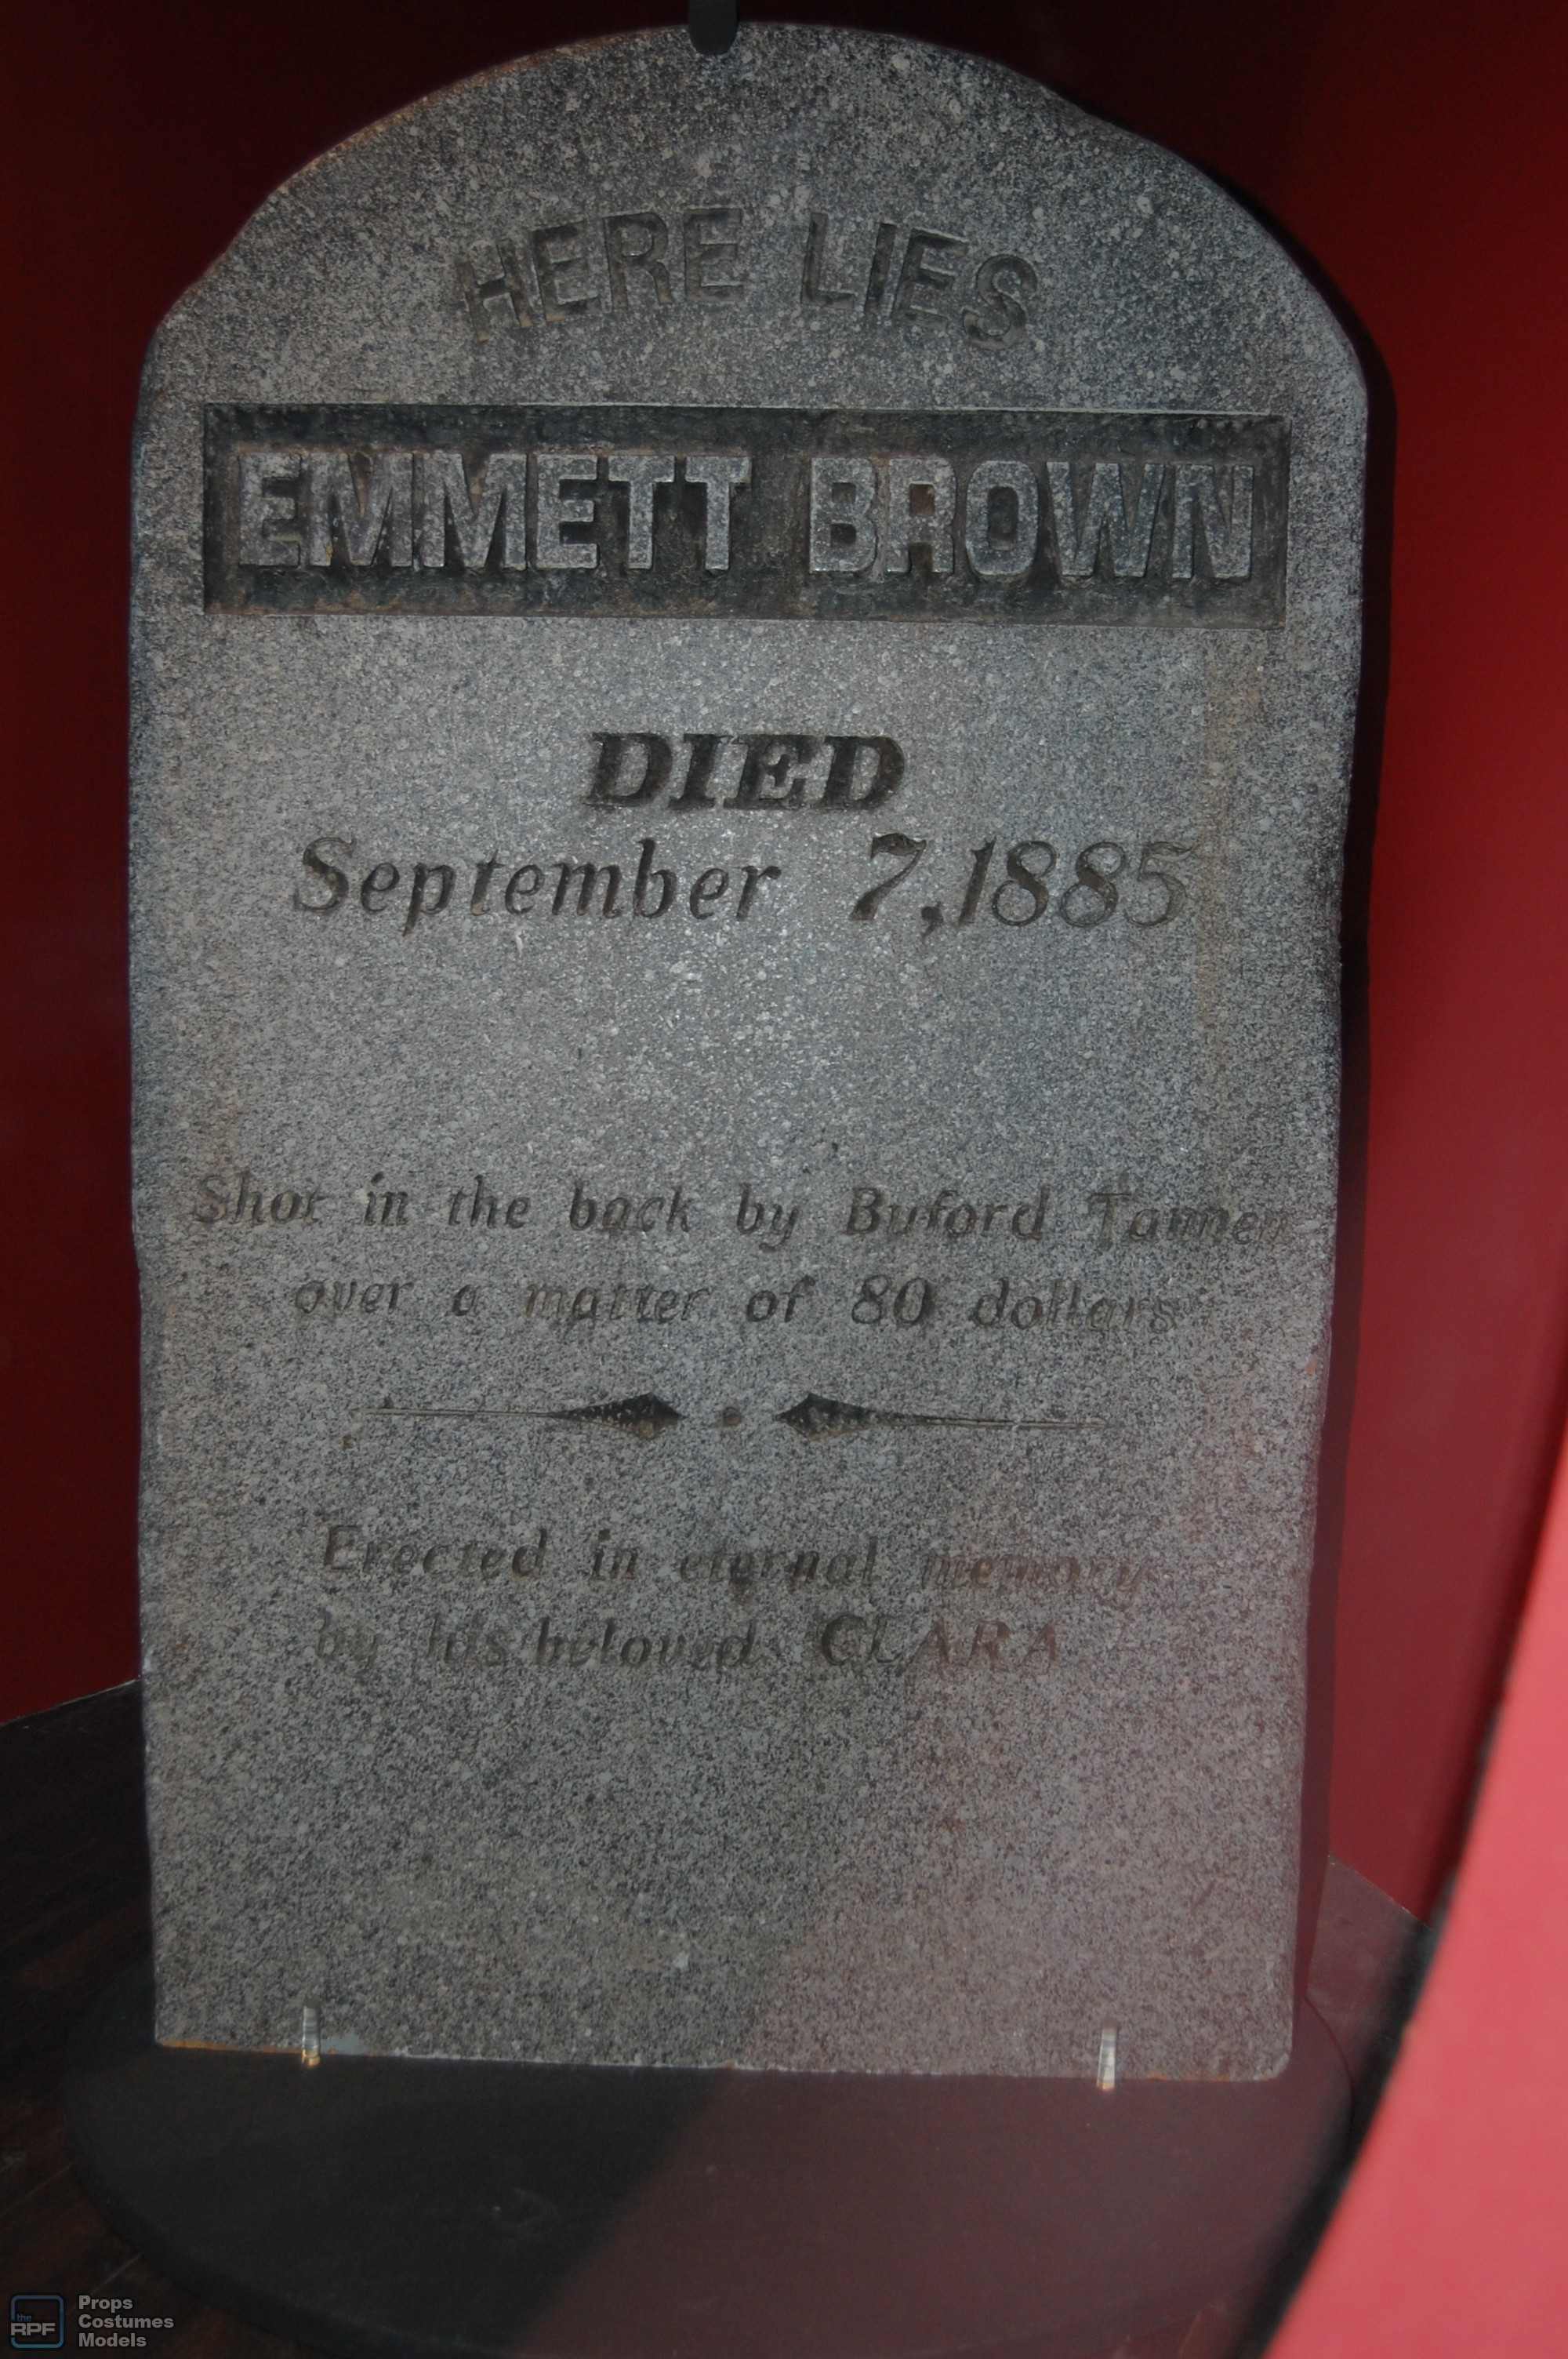 Doc Brown's tombstone